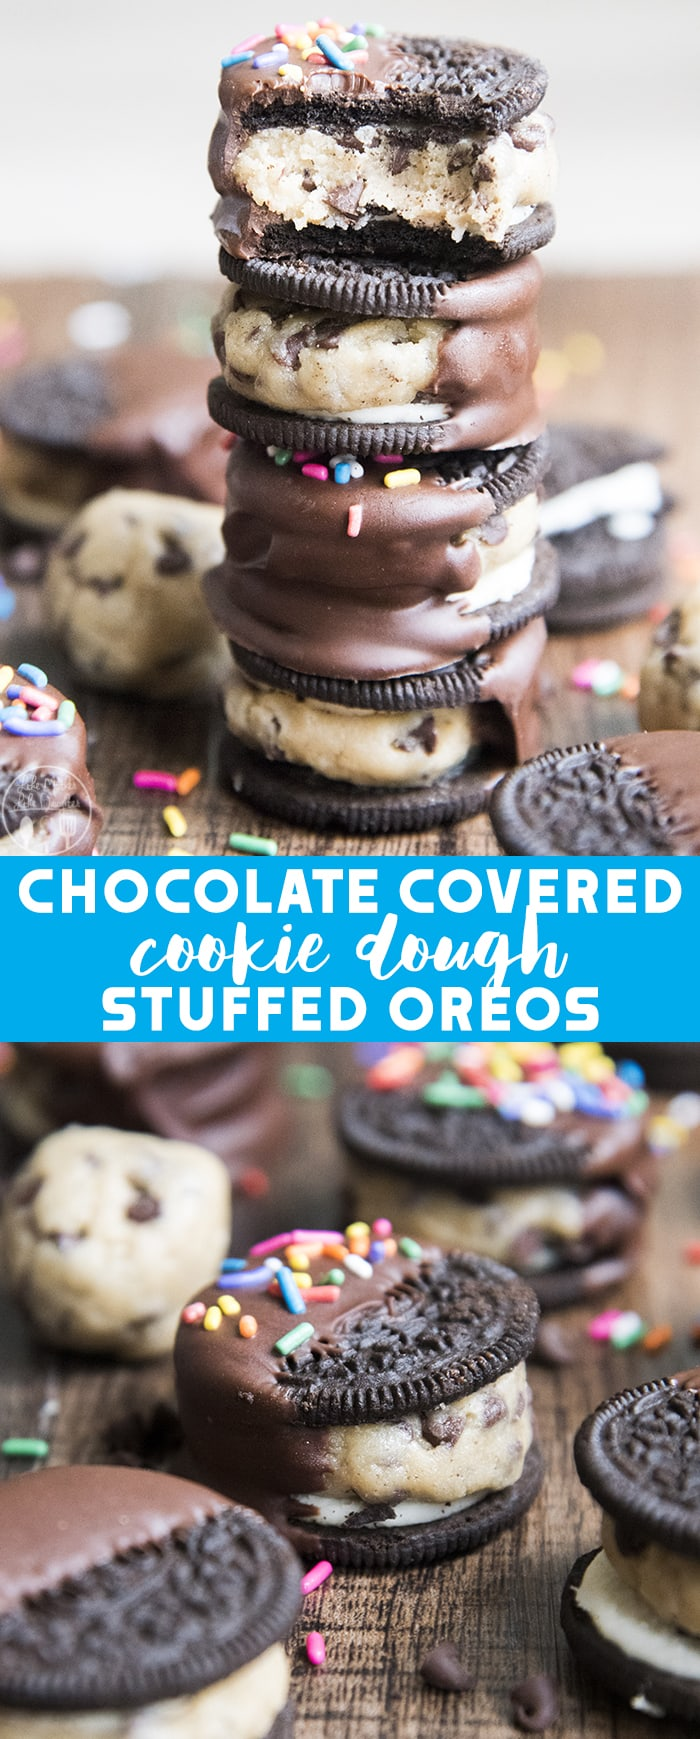 >Cookie Dough Stuffed Oreos, with an edible chocolate chip cookie dough stuffed into the middle of an Oreo cookie and then dipped it chocolate, are sure to satisfy your sweet tooth!